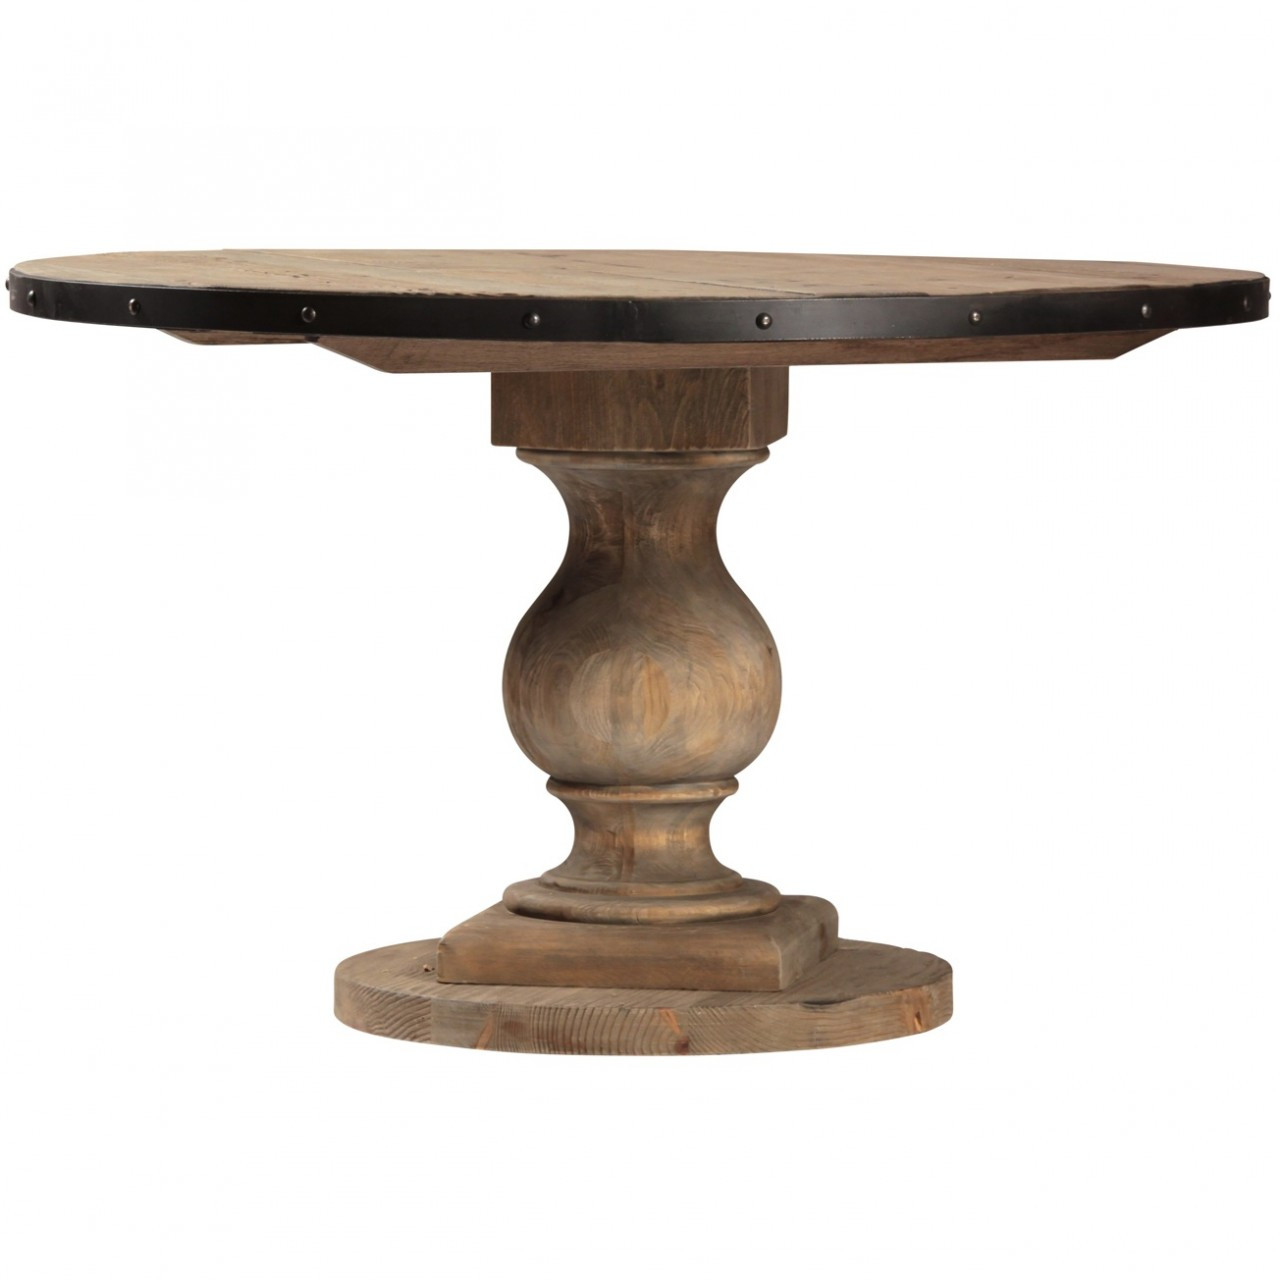 Top Round Pedestal Table 1280 x 1280 · 83 kB · jpeg